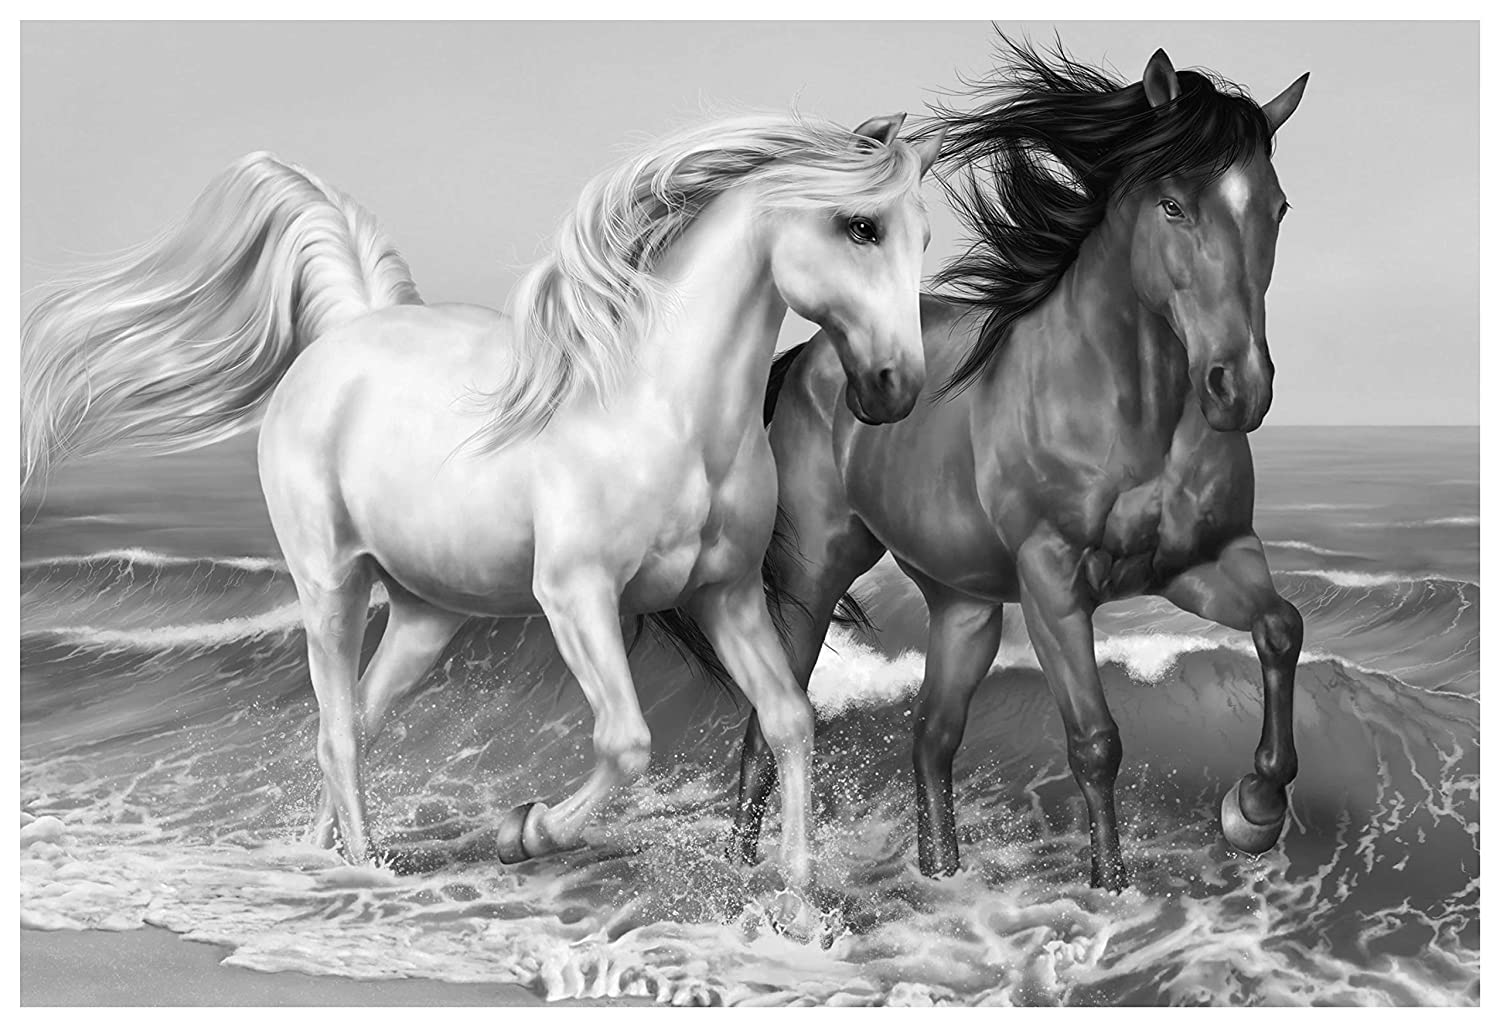 Buy rawpockets black and white horse wall posterpaper board 33 x 48 cm online at low prices in india amazon in